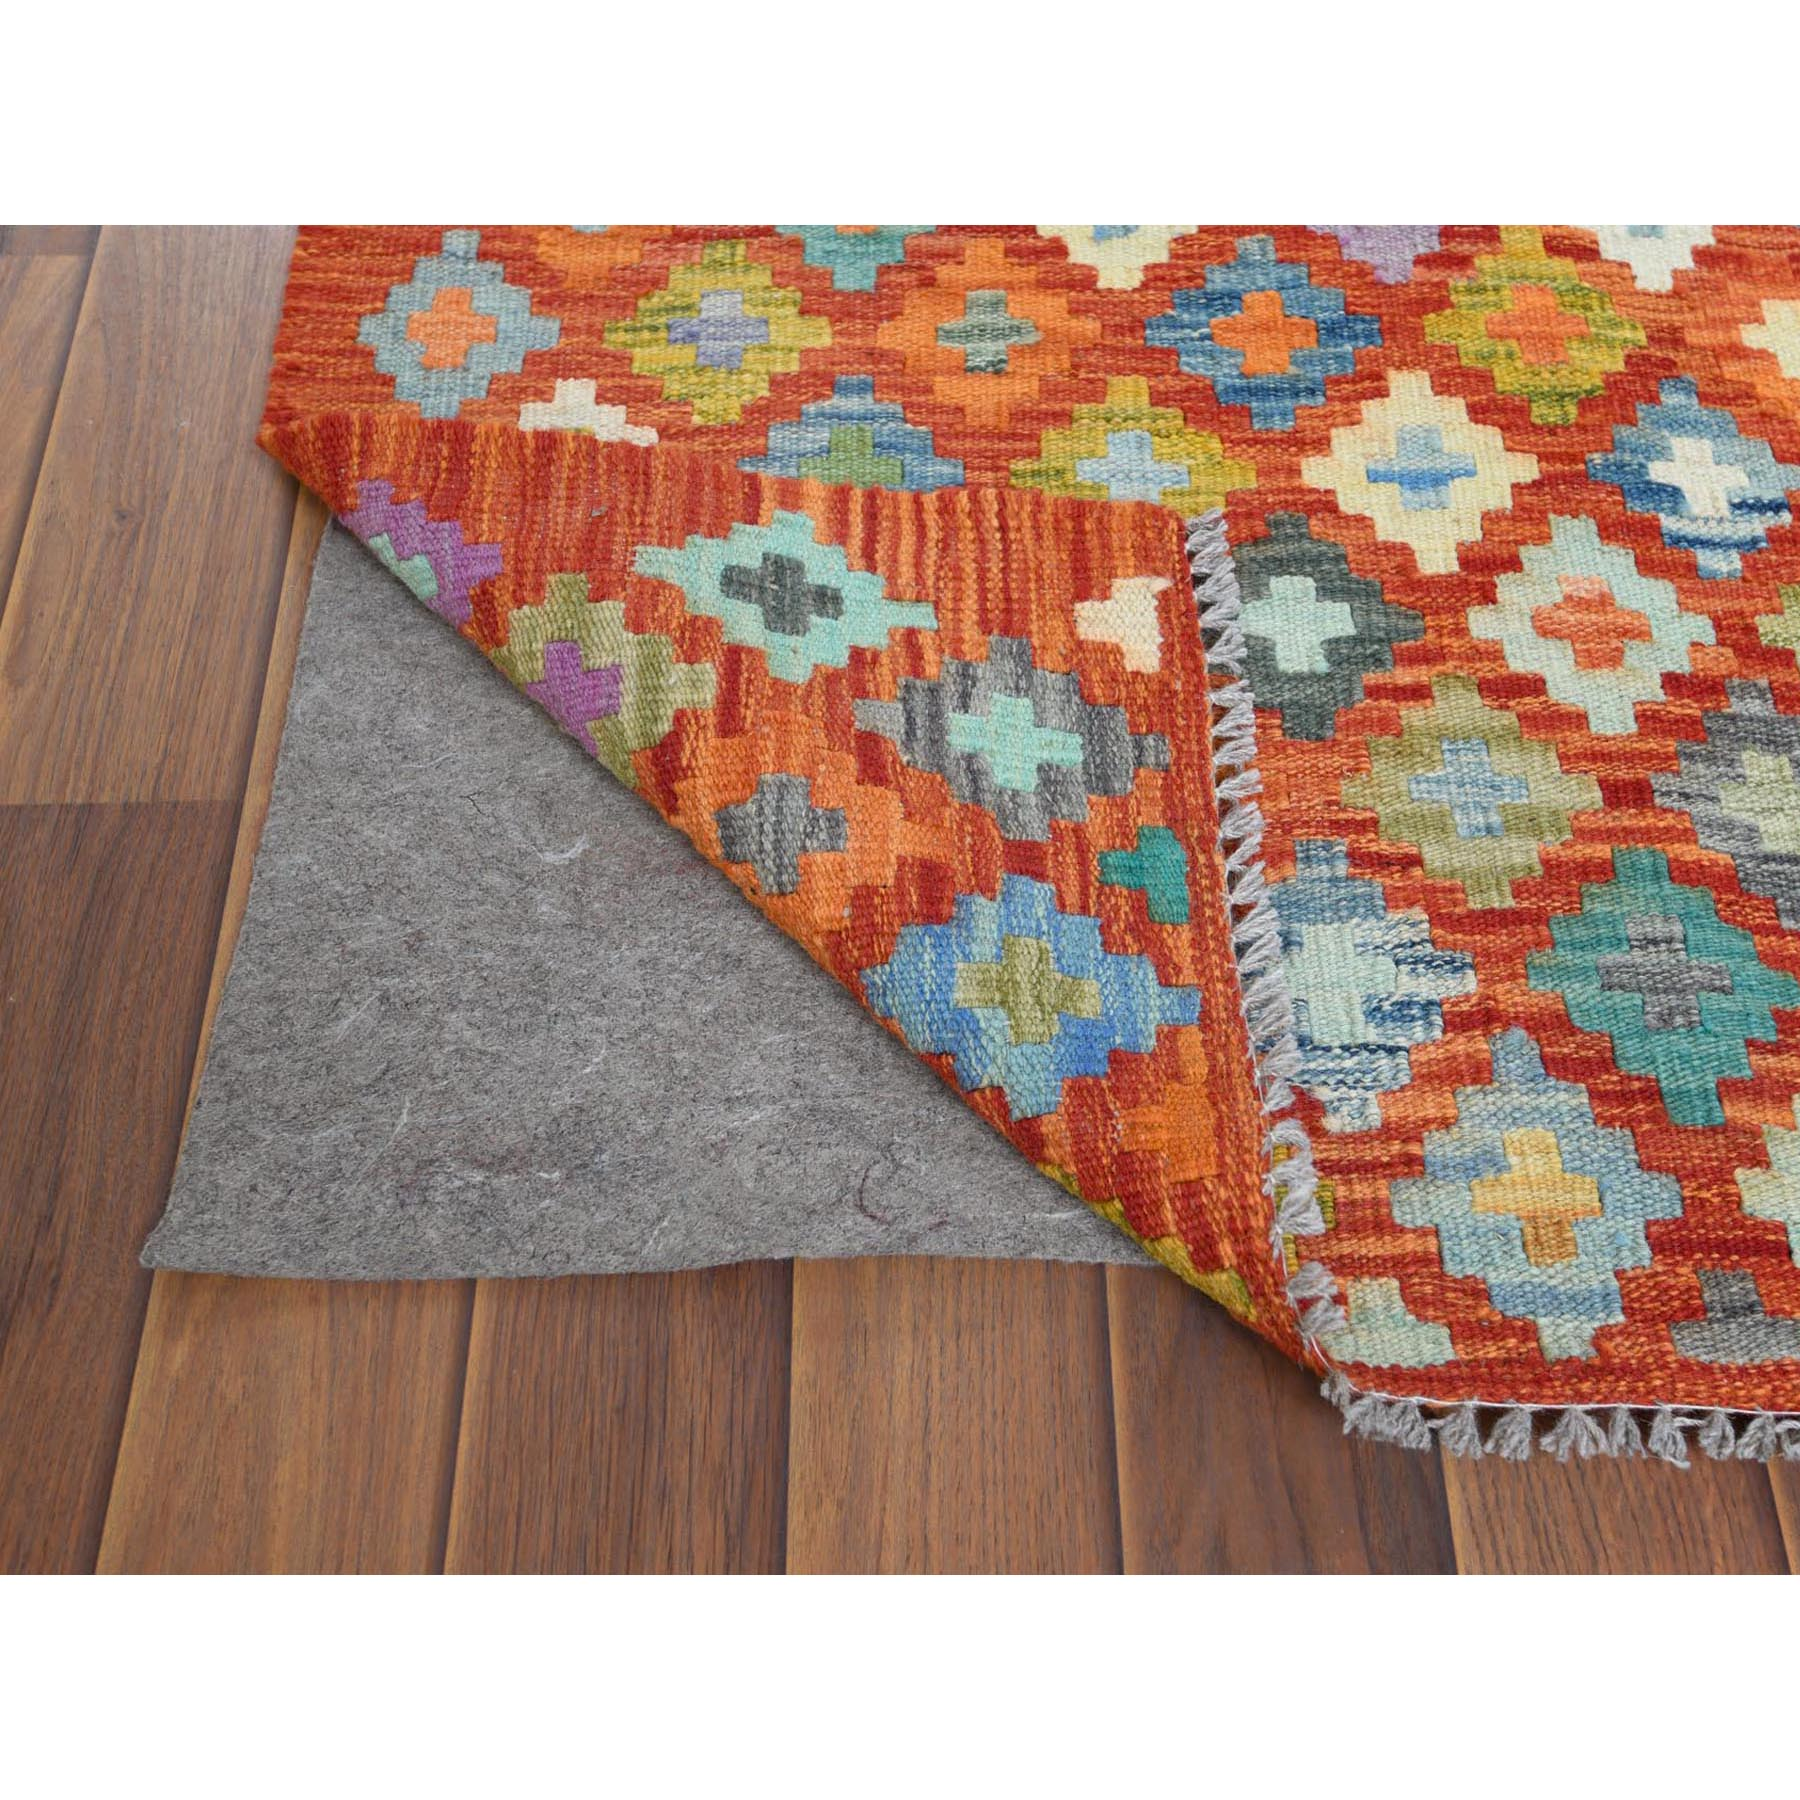 "2'9""x9'10"" Red Afghan Kilim In A Colorful Palette Geometric Design Glimmery Wool Hand Woven Oriental Runner Reversible Rug"